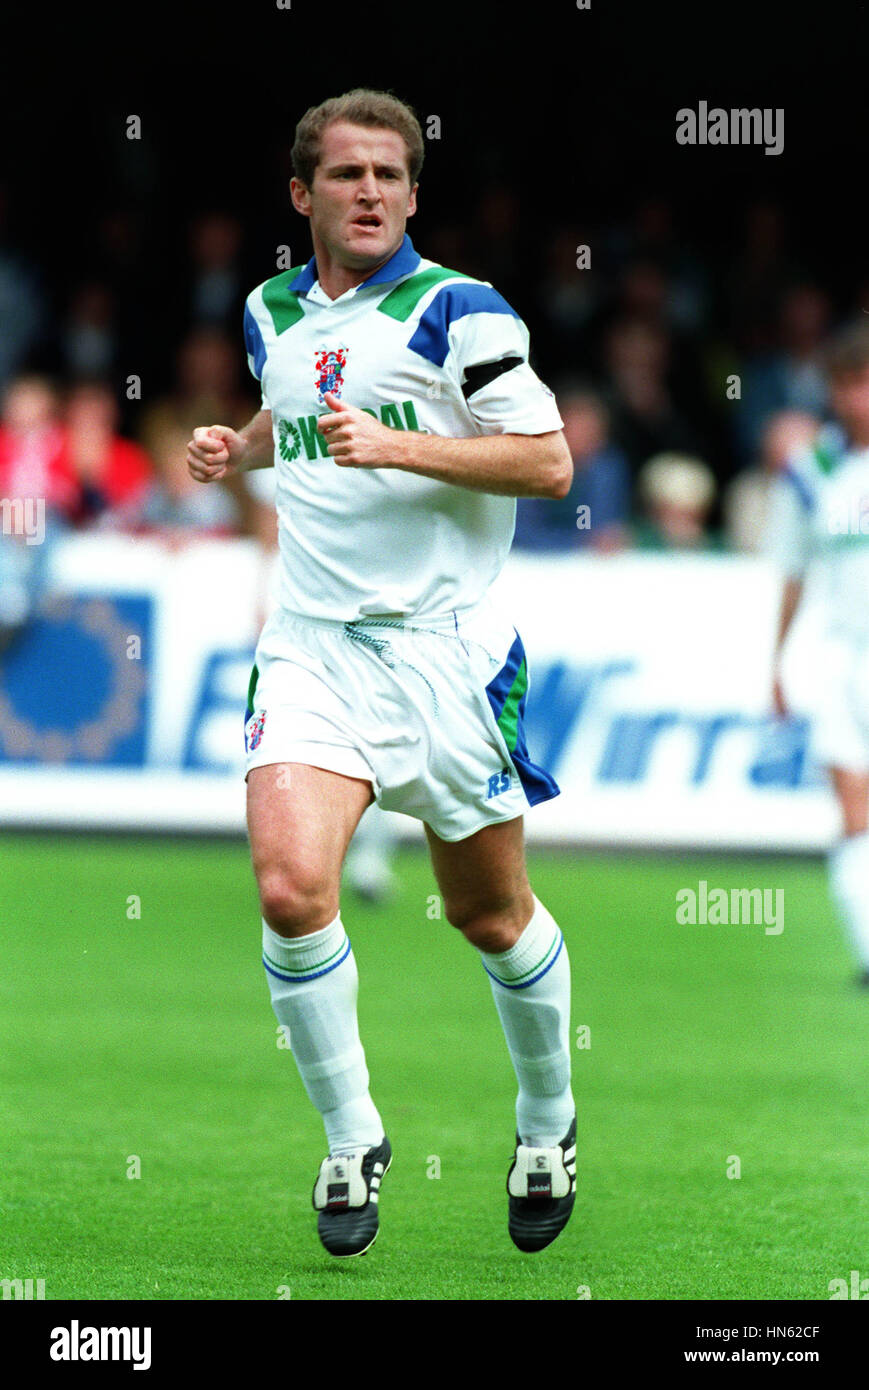 http://c8.alamy.com/comp/HN62CF/mark-proctor-tranmere-rovers-fc-02-august-1993-HN62CF.jpg